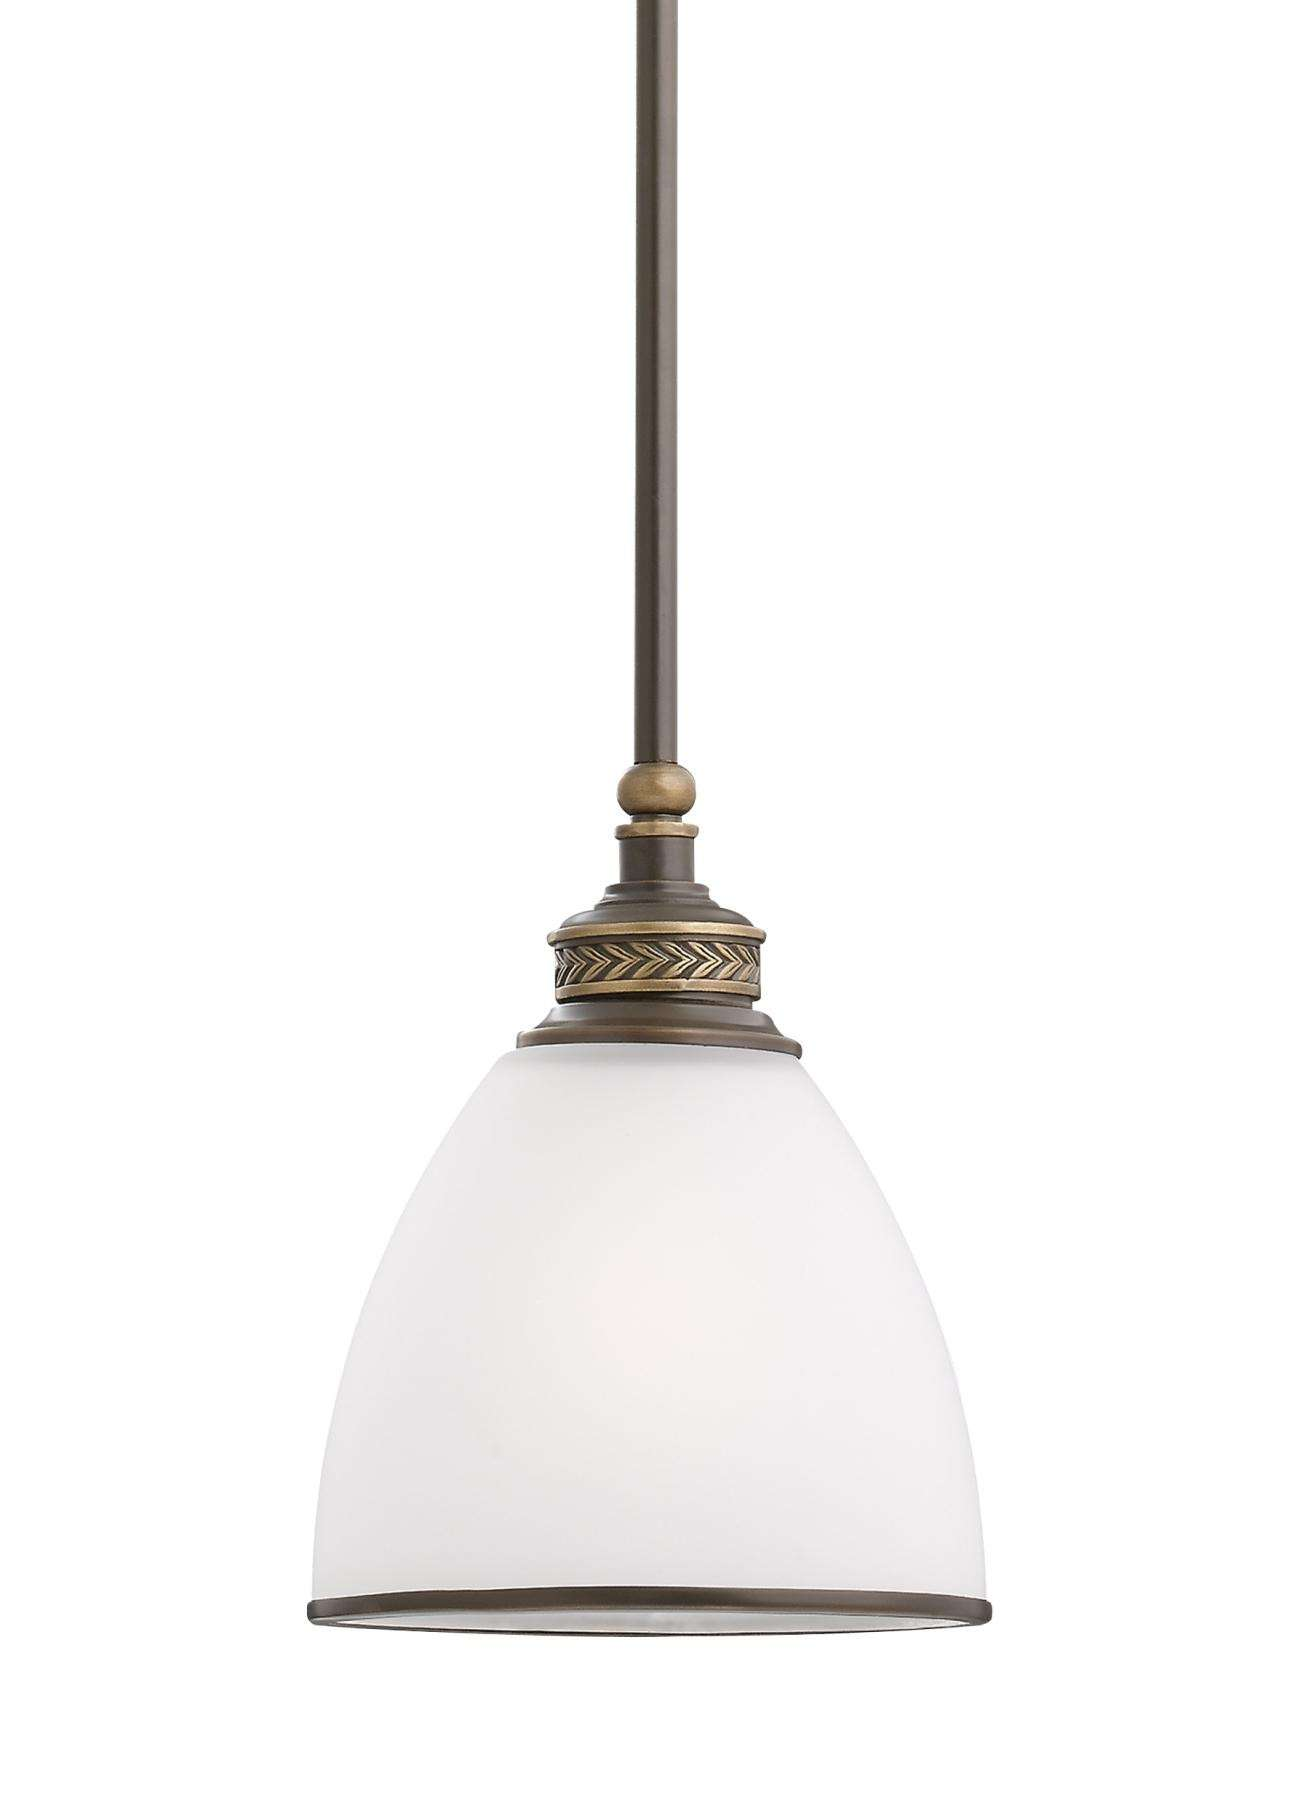 Seagull Lighting 61350-708 One Light Mini-Pendant in Estate Bronze finish